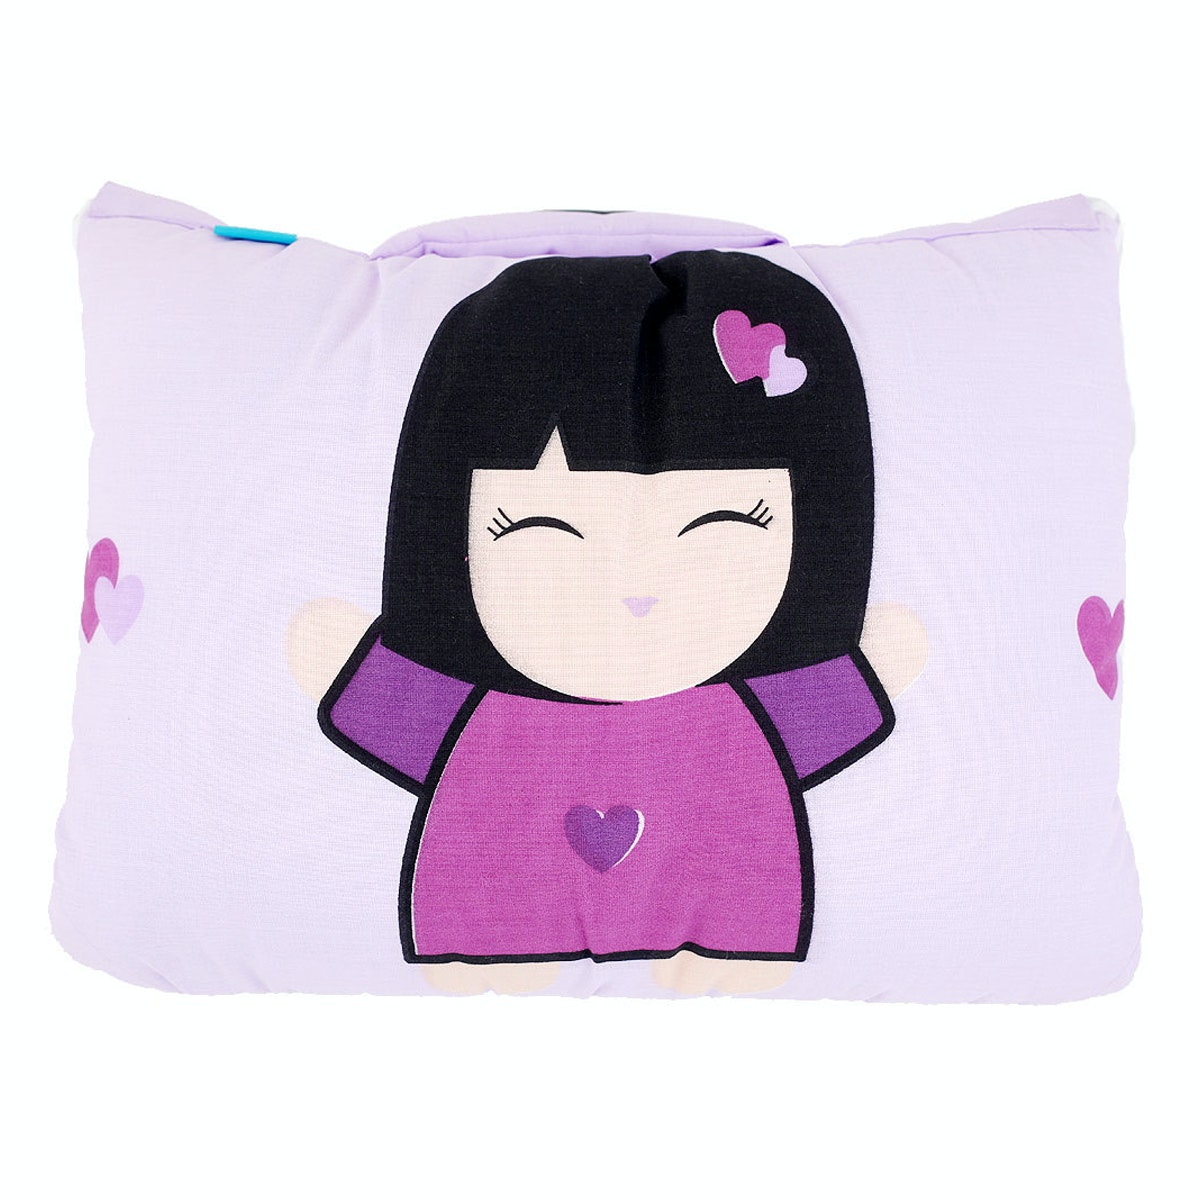 Juzzshop Bantal Selimut Mini Little Oshin JSBM068